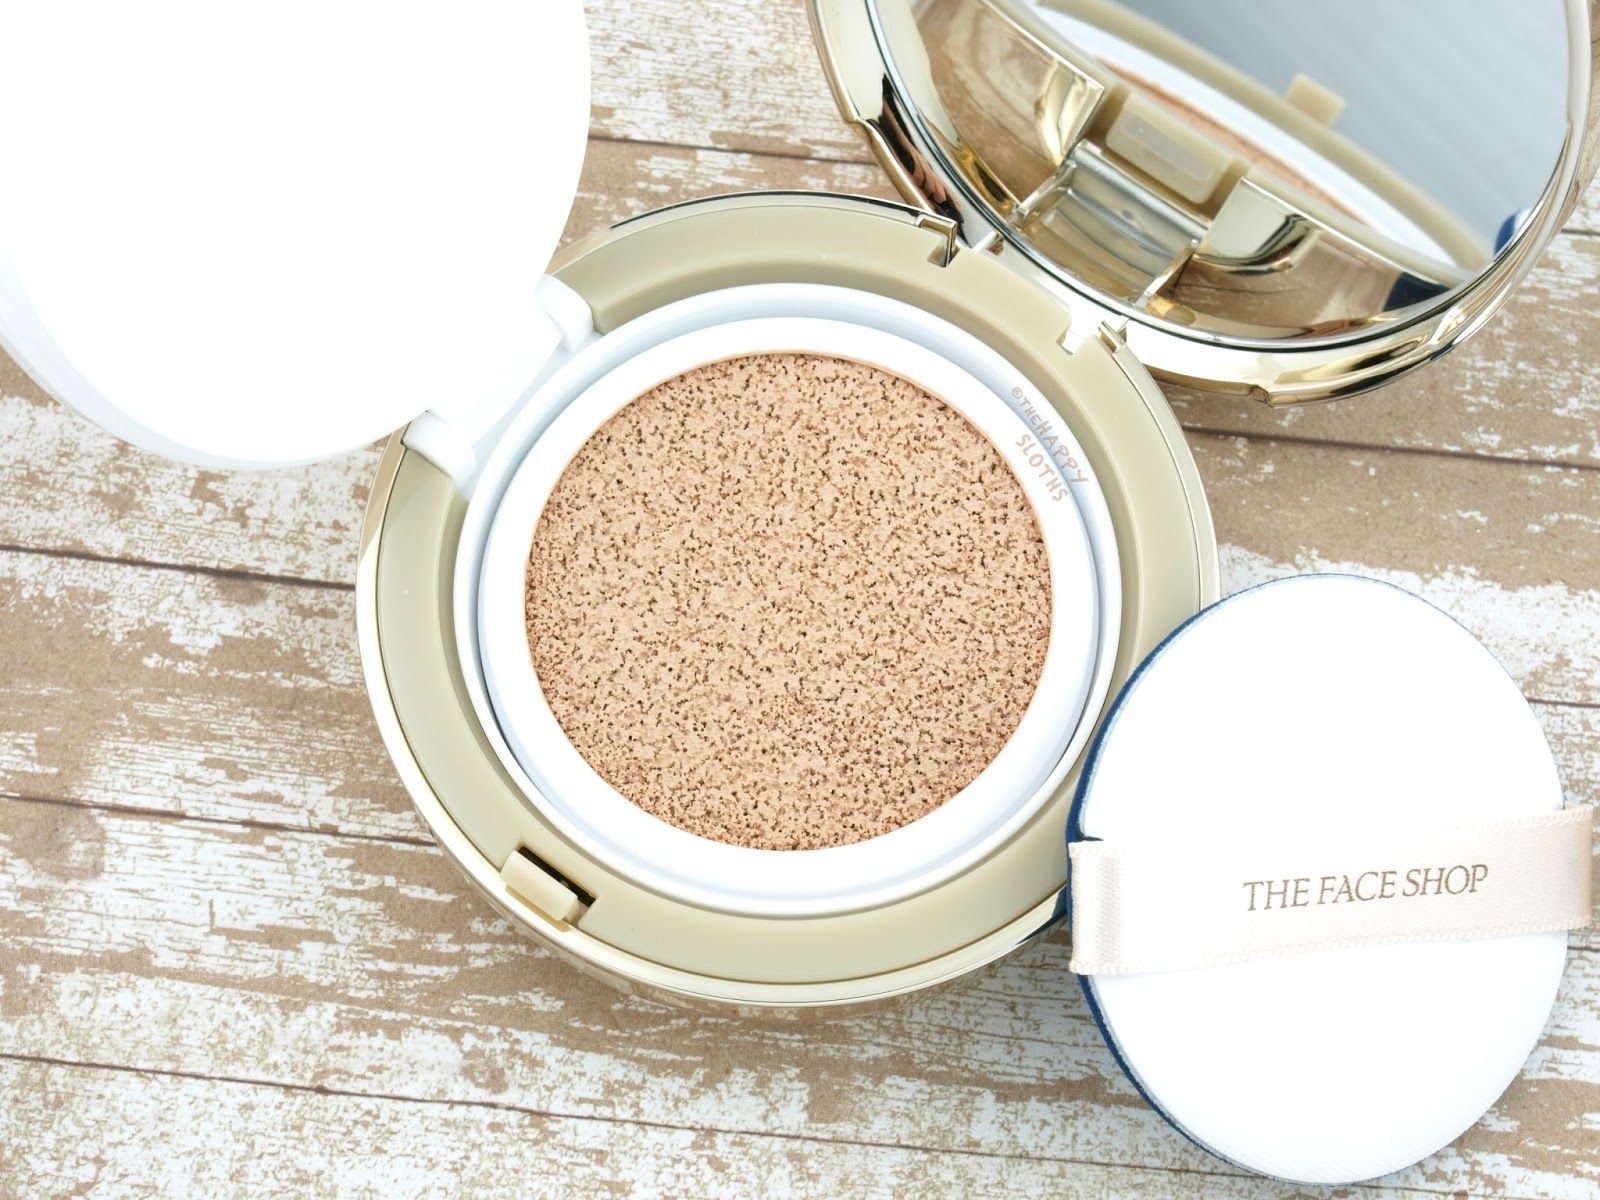 THE FACE SHOP Miracle Finish CC Intense Cover Cushion Foundation in V201 Apricot Beige: Review and Swatches